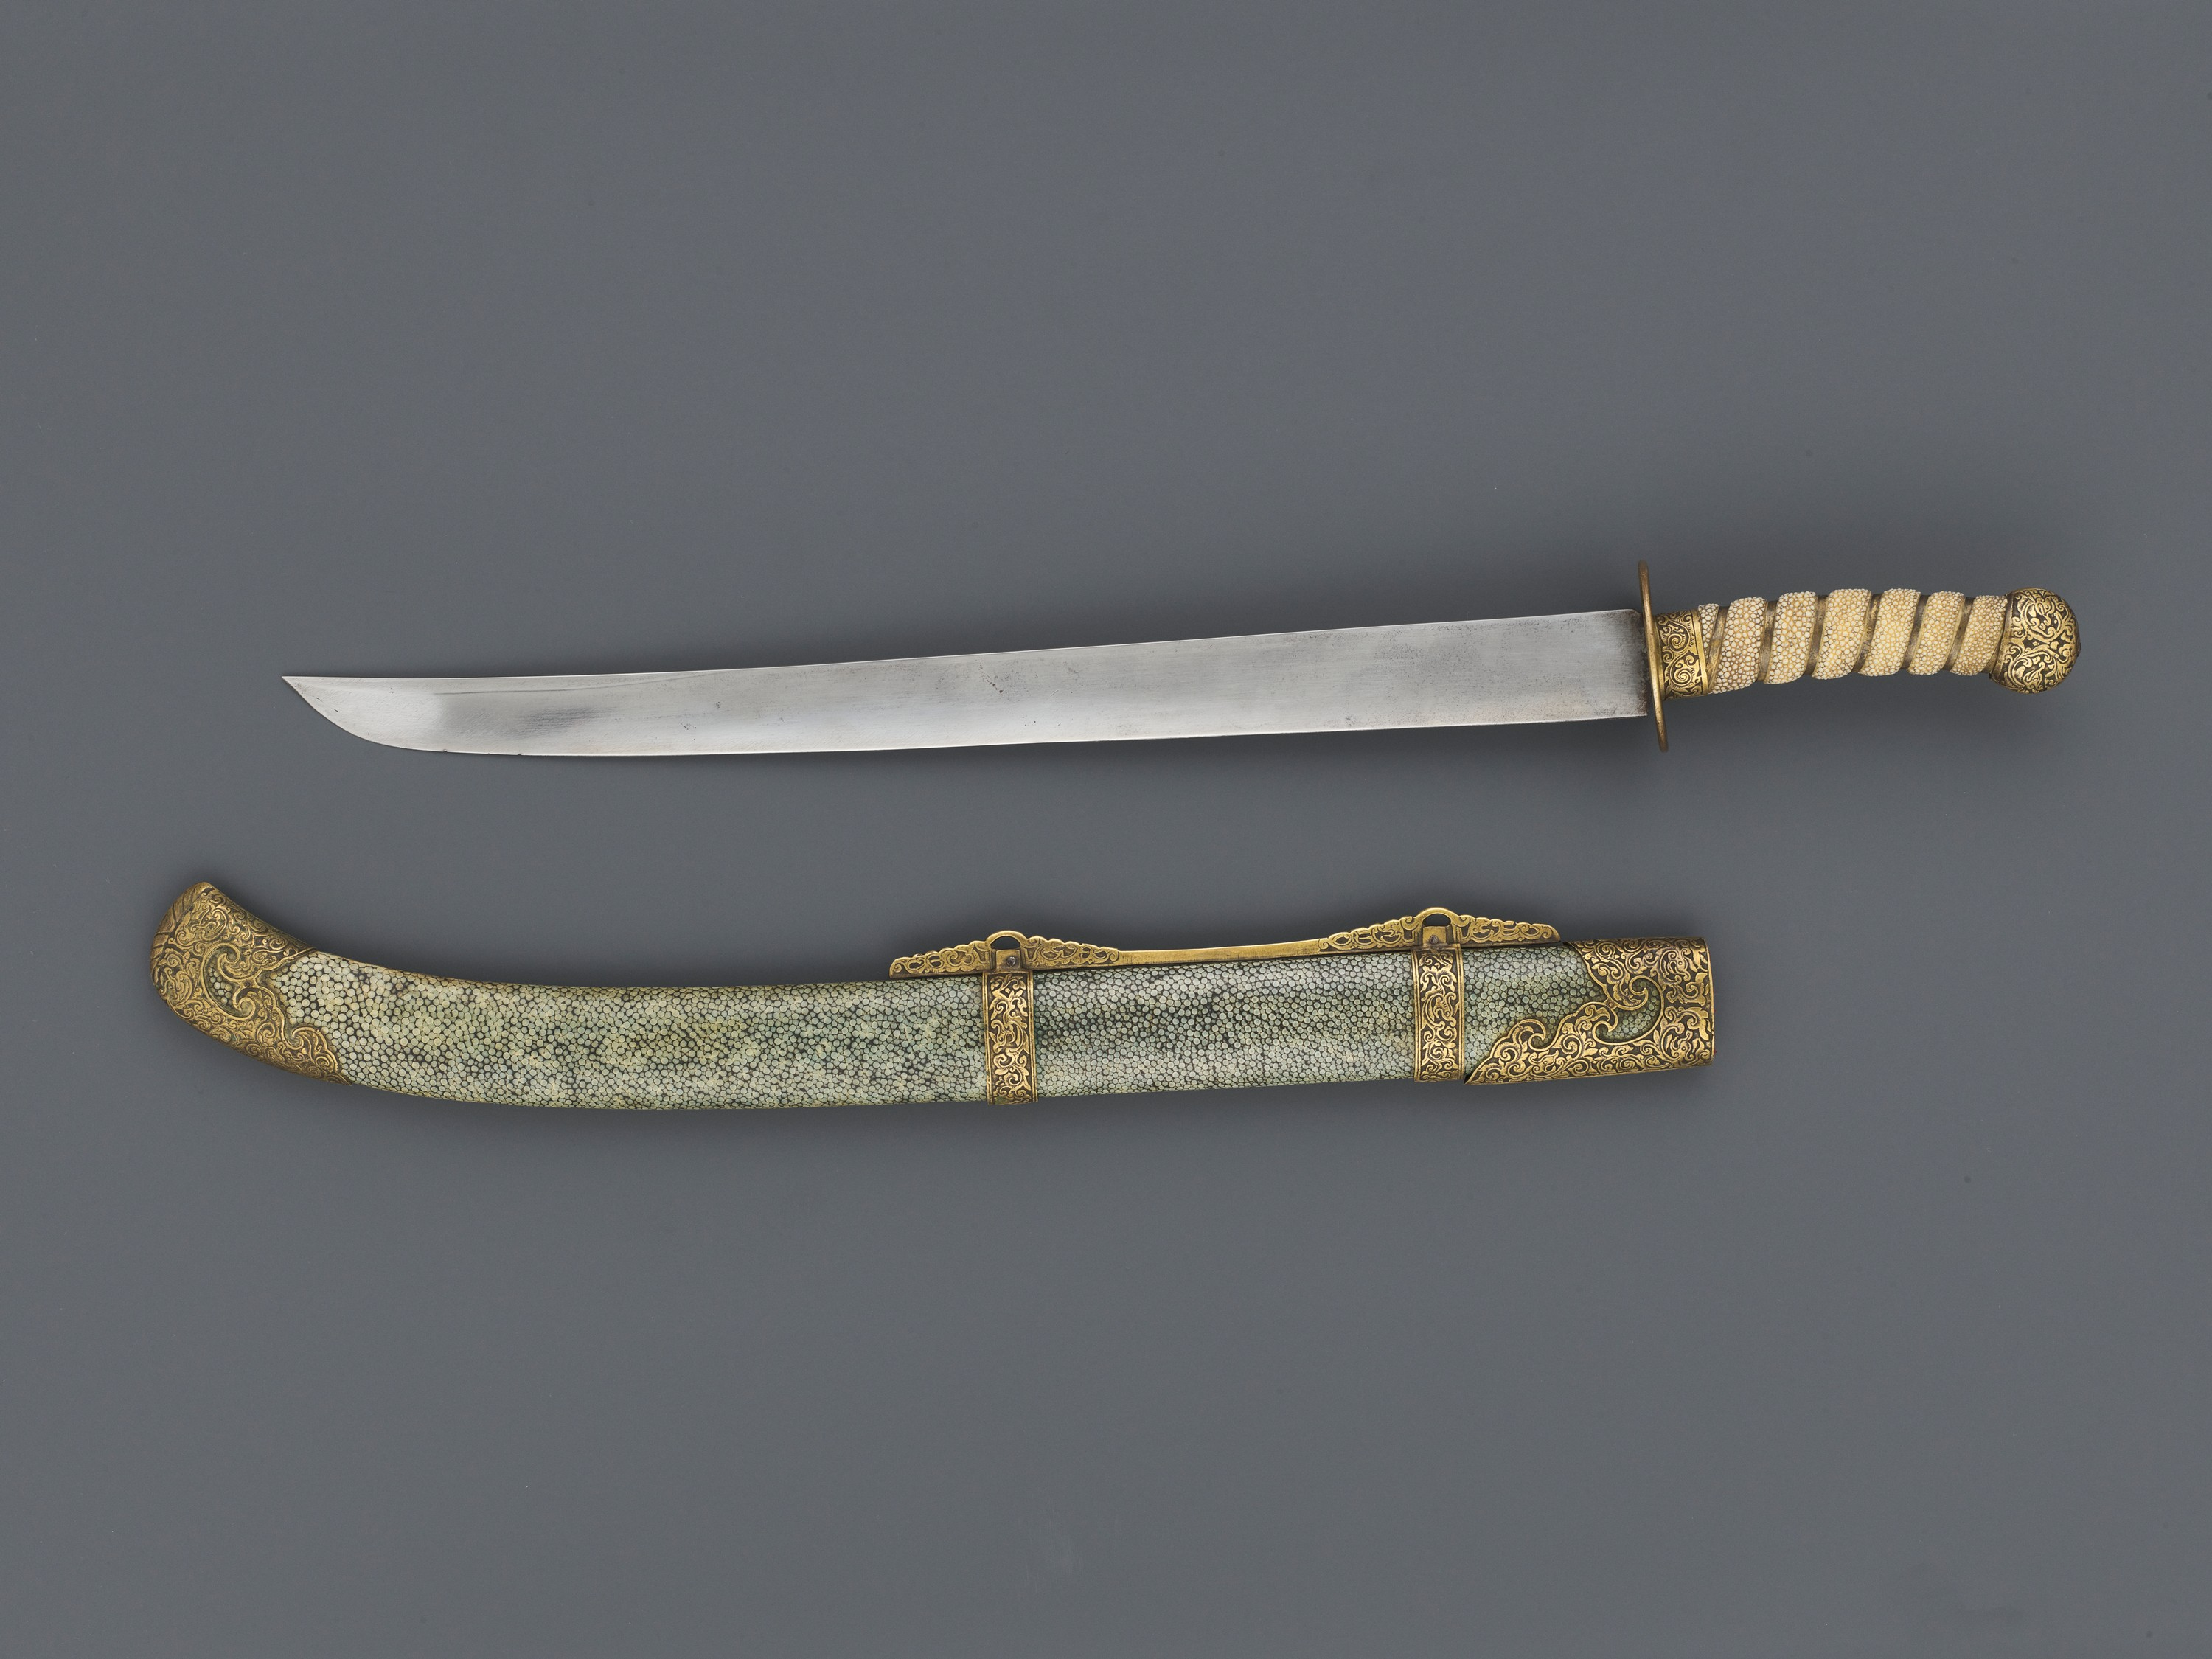 A CEREMONIAL SWORD AND SCABBARD, QING DYNASTY - Image 5 of 7